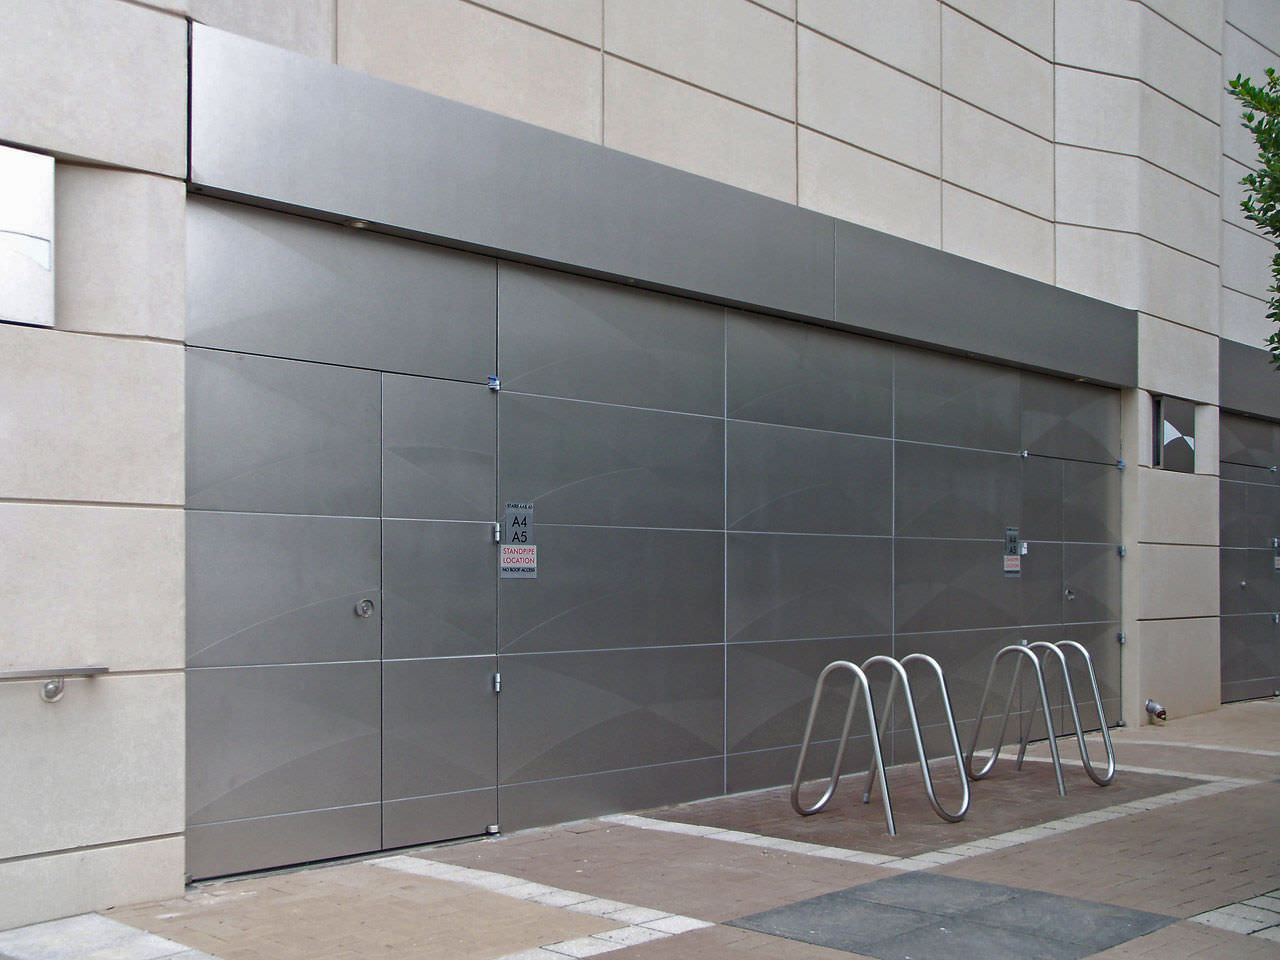 Metal facade cladding (stainless steel) - NASCAR HALL OF FAME - Zahner